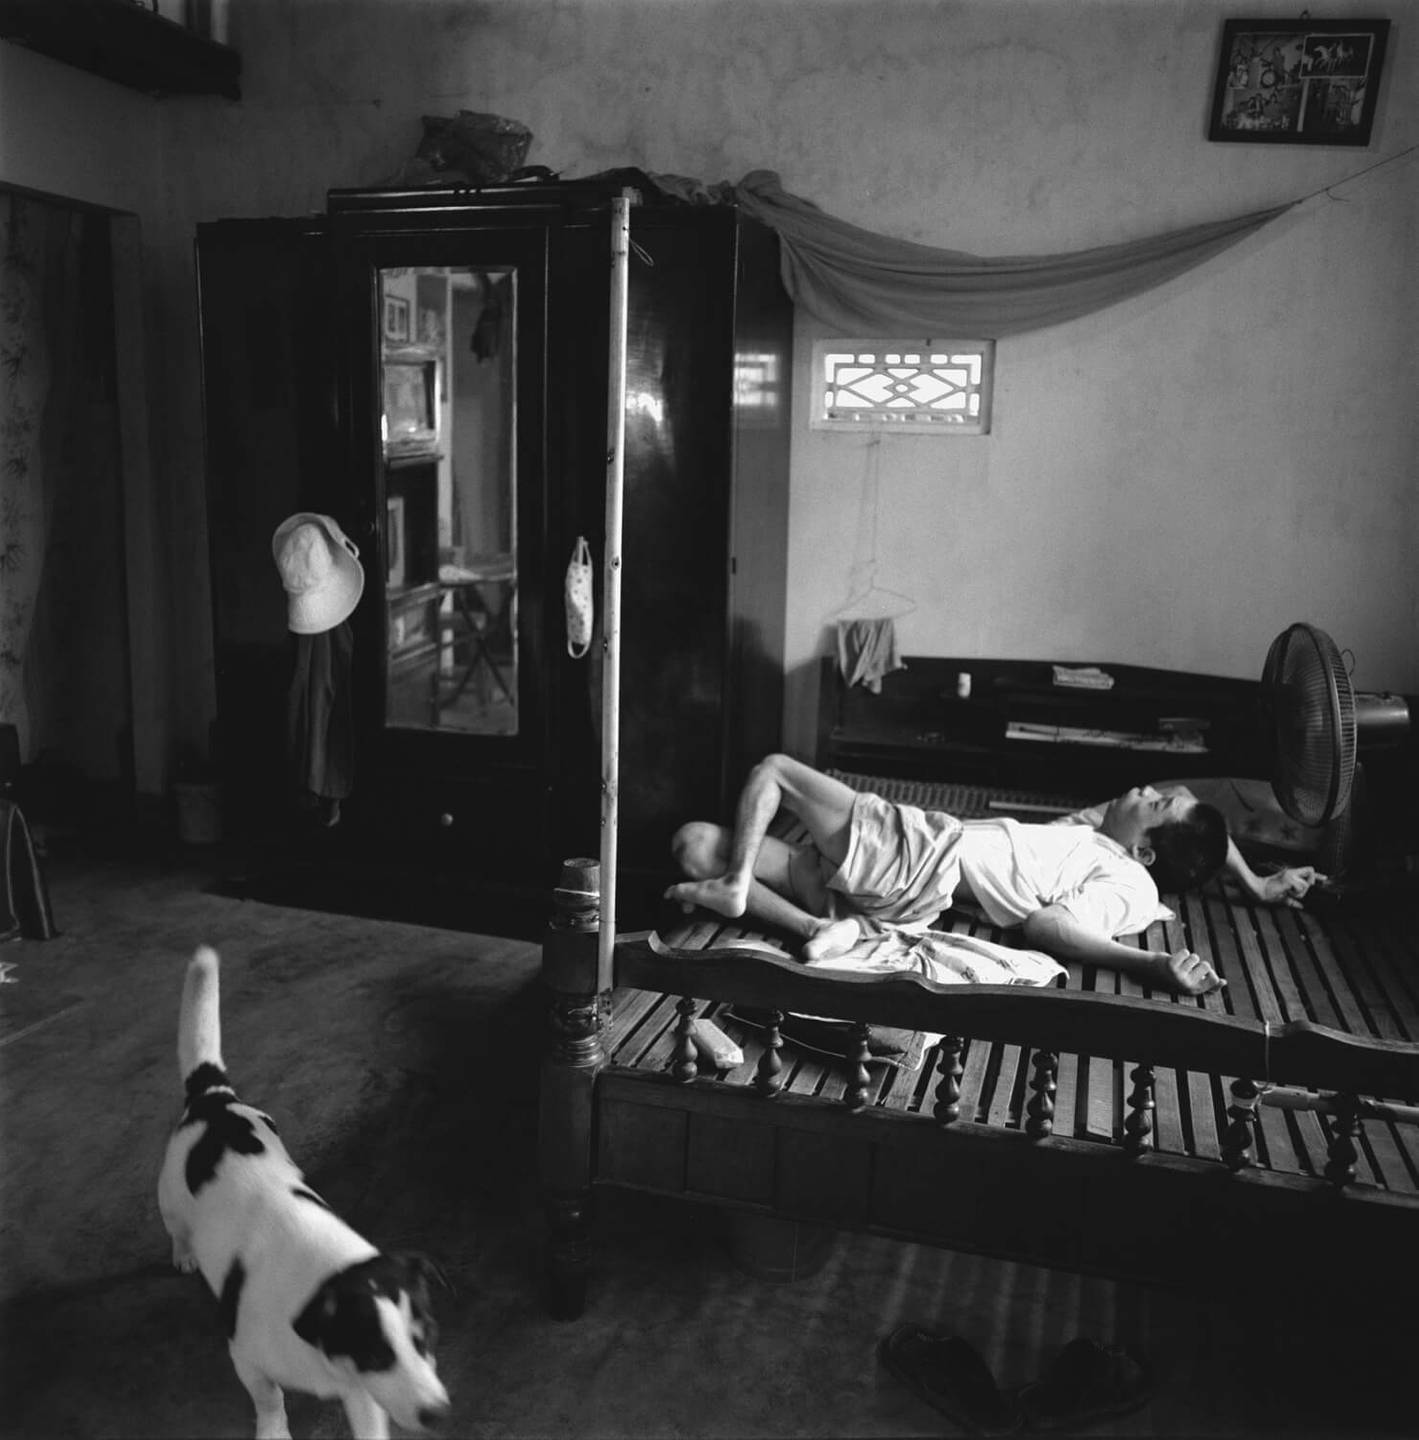 A deformed Asian child lays on a bed, a dog strolls by.